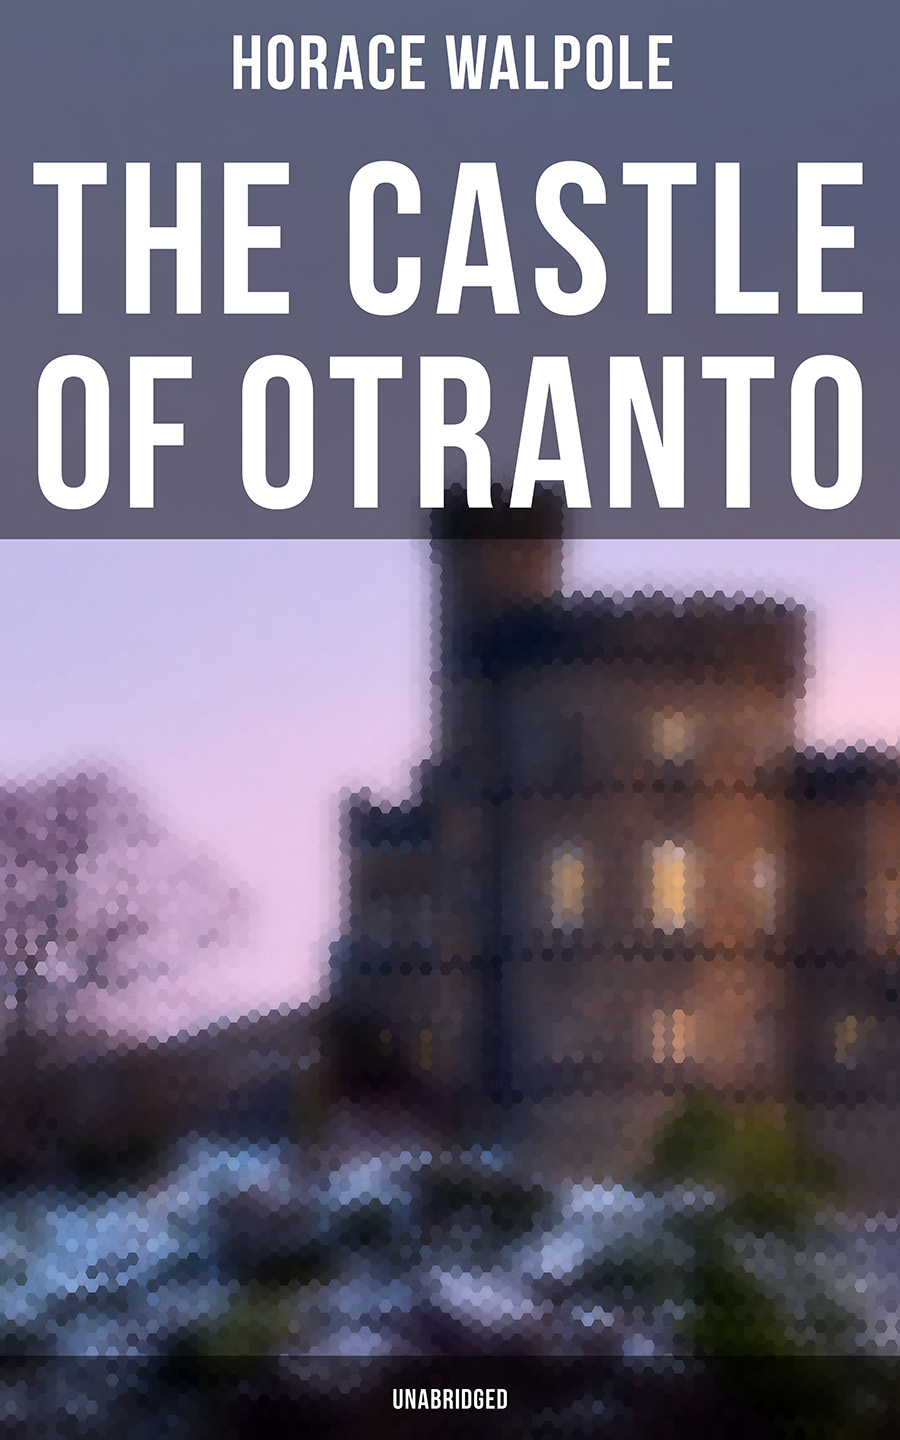 Horace Walpole The Castle of Otranto (Unabridged) pierce horace the odes of horace complete in english rhyme and blank verse